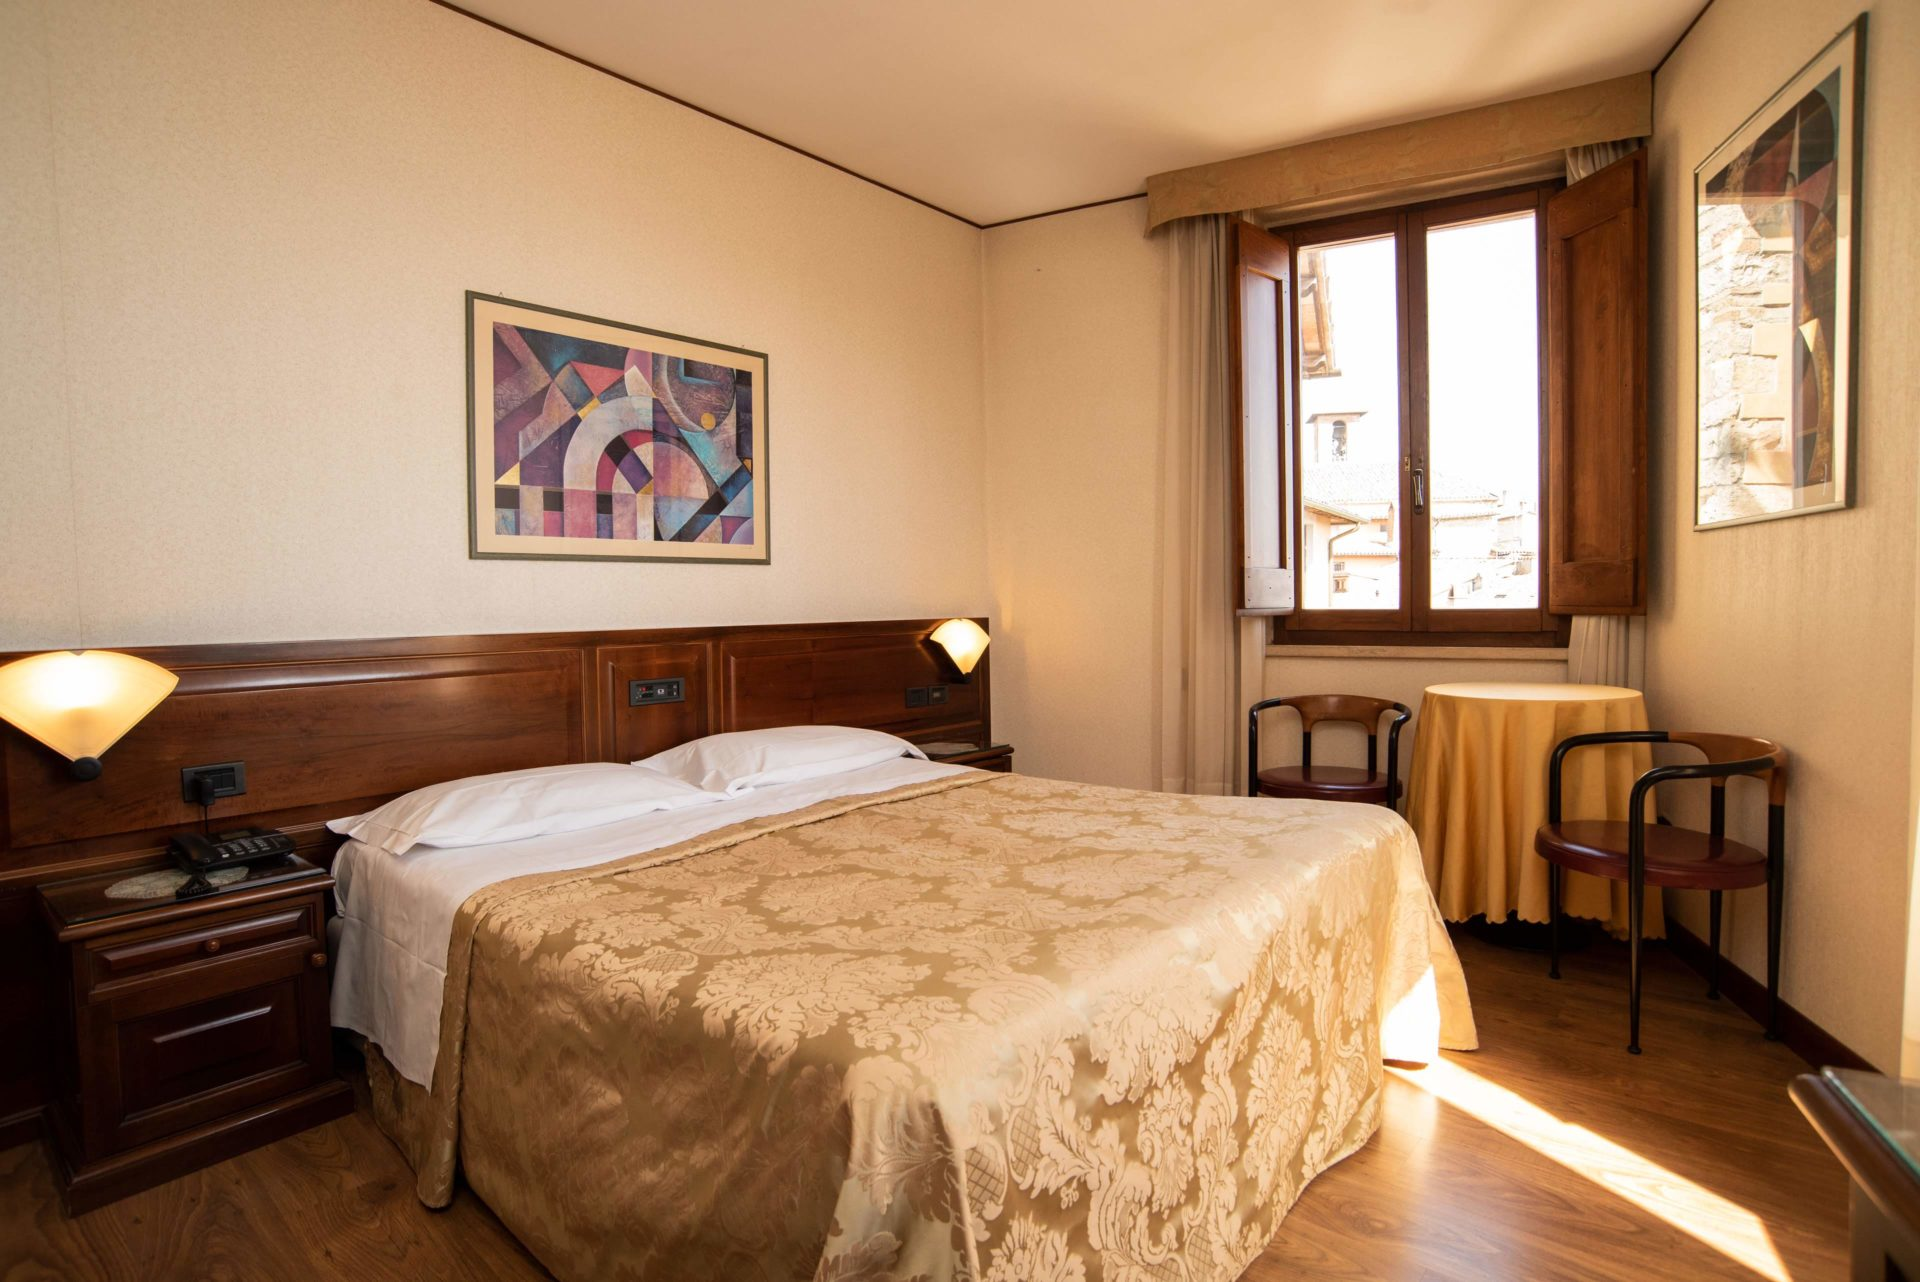 scegliere-fontecesia - why choose us - Hotel Fonte Cesia - Todi - Umbria - advantages - vantaggio